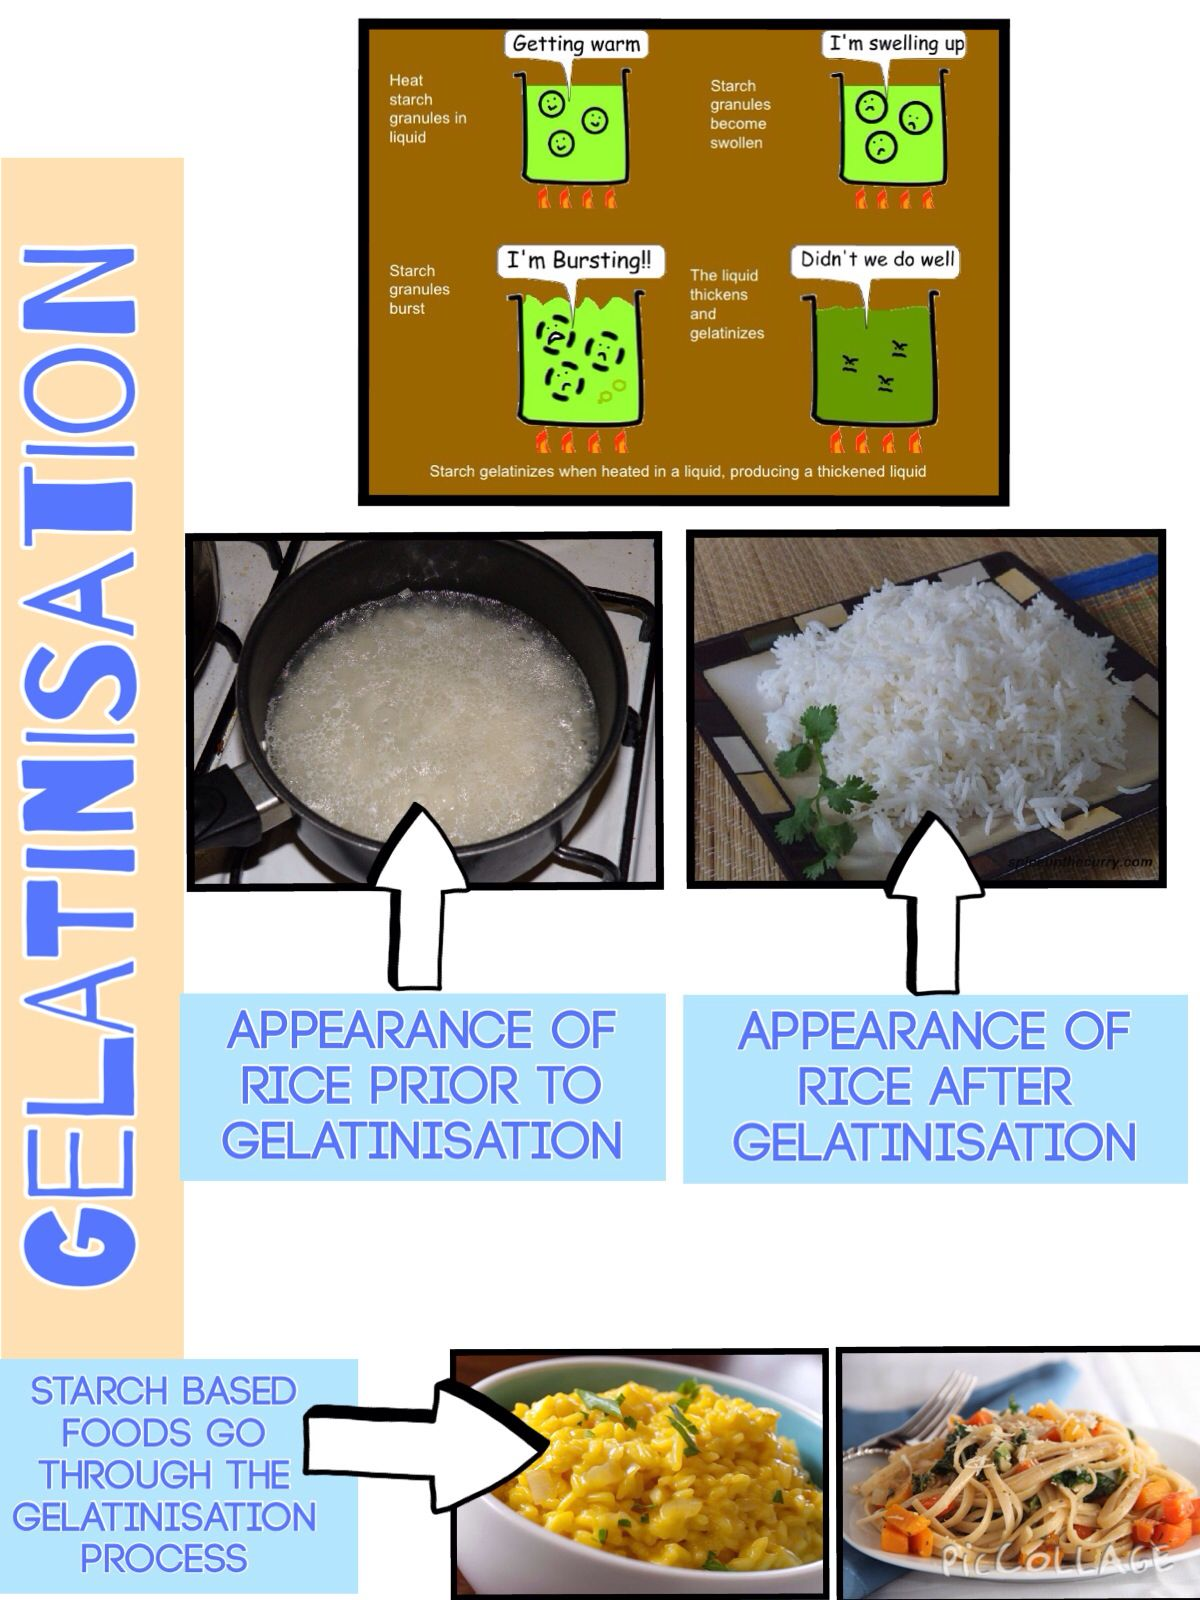 How to reduce food waste when buying preparing cooking aqa gcse gelatinisation explained forumfinder Gallery